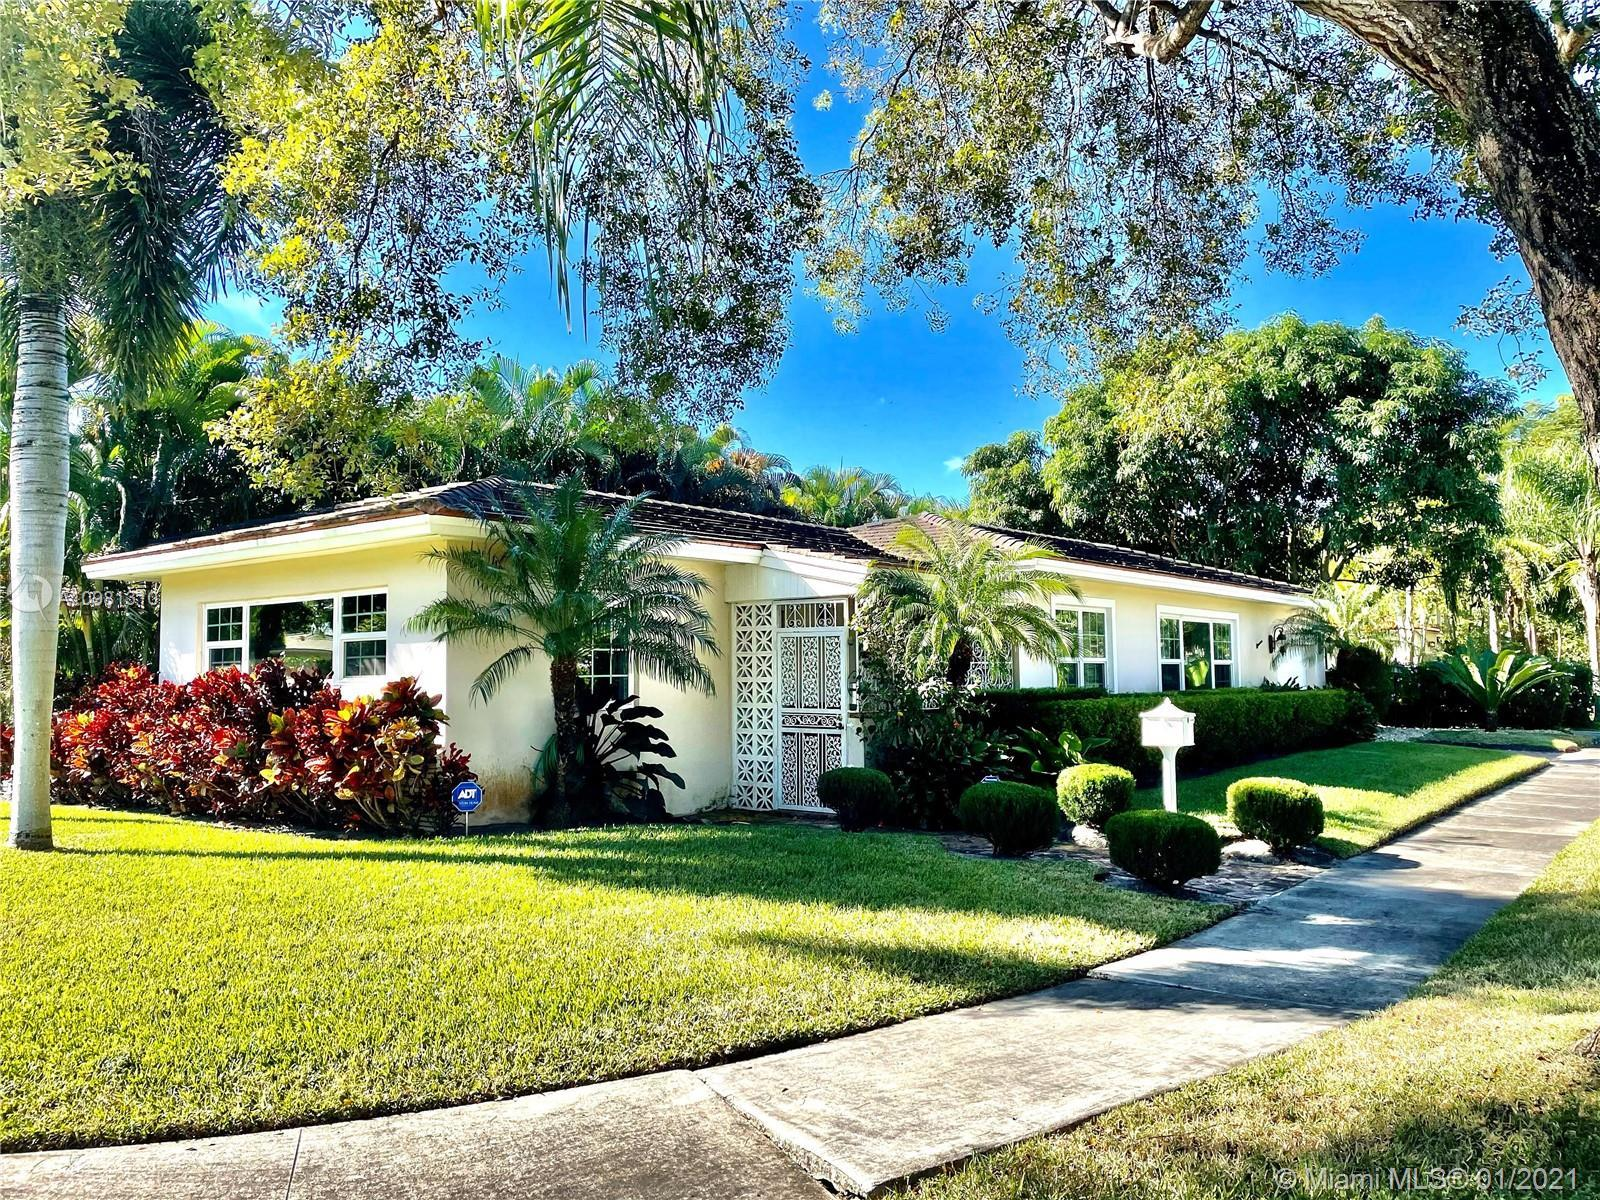 Very spacious 2 bedroom and 1 bath Miami Shores corner home. Interior has wood floors and tile in be